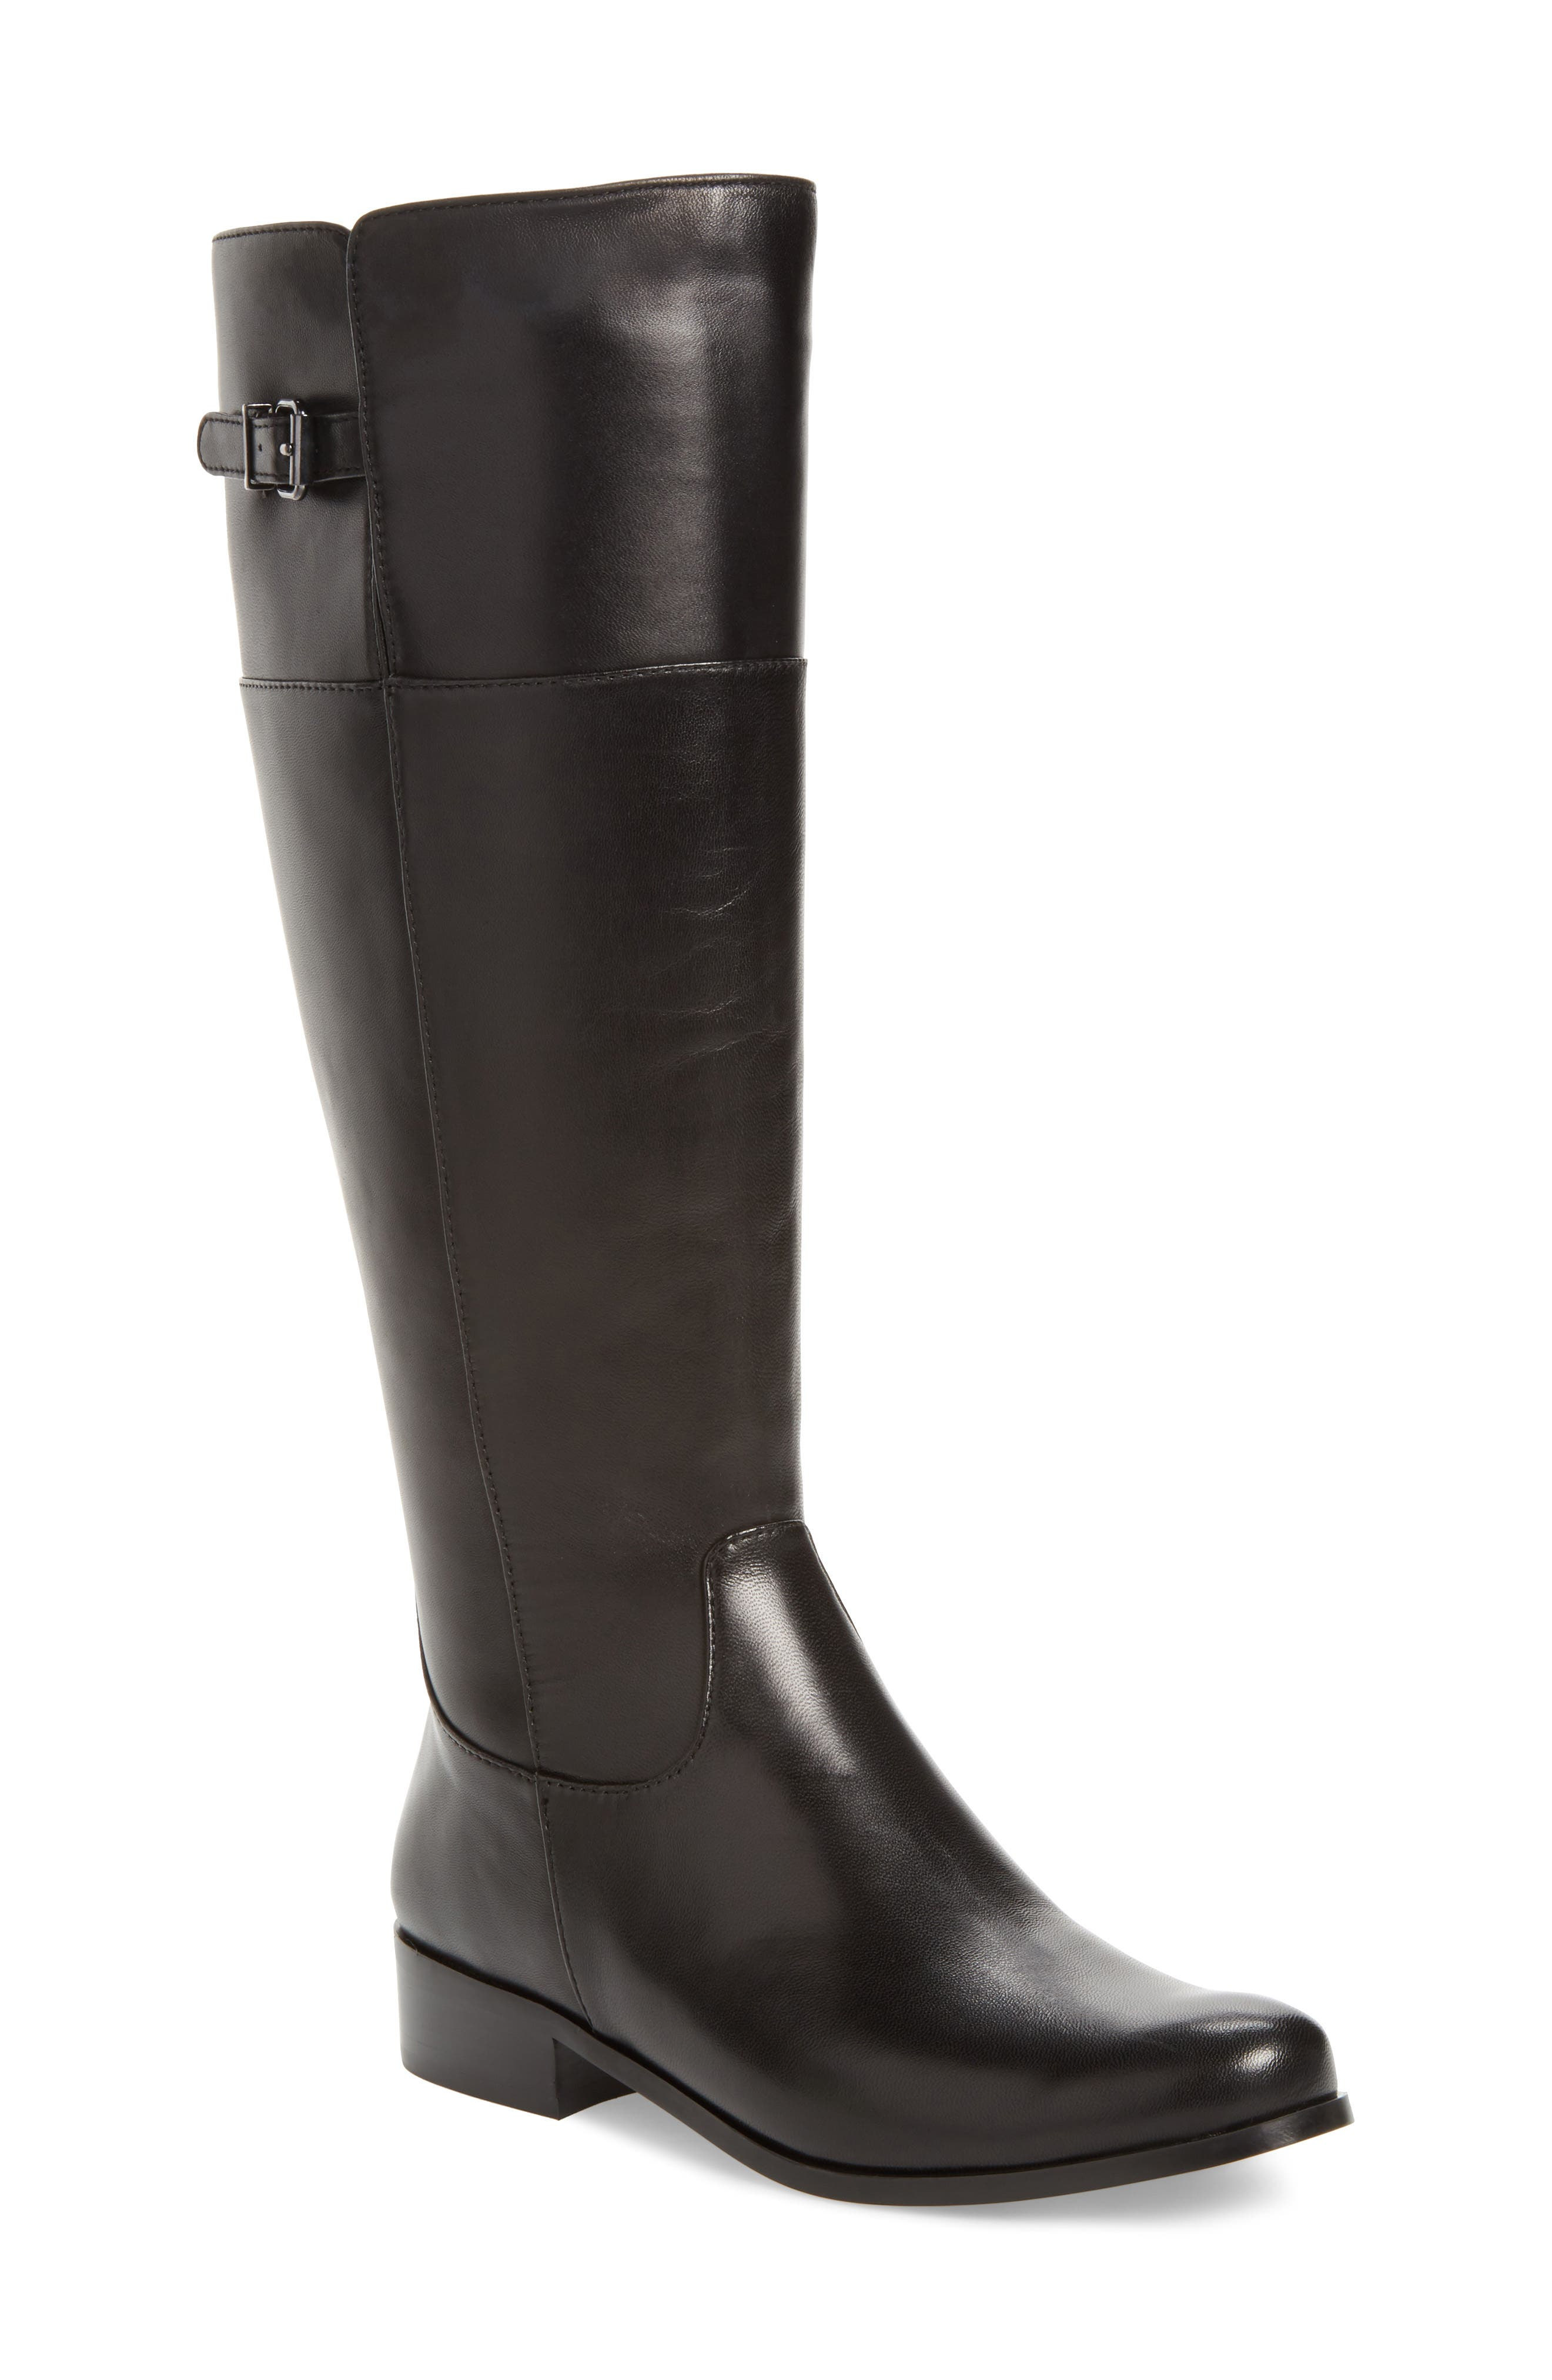 Record Boot,                             Main thumbnail 1, color,                             Black Leather